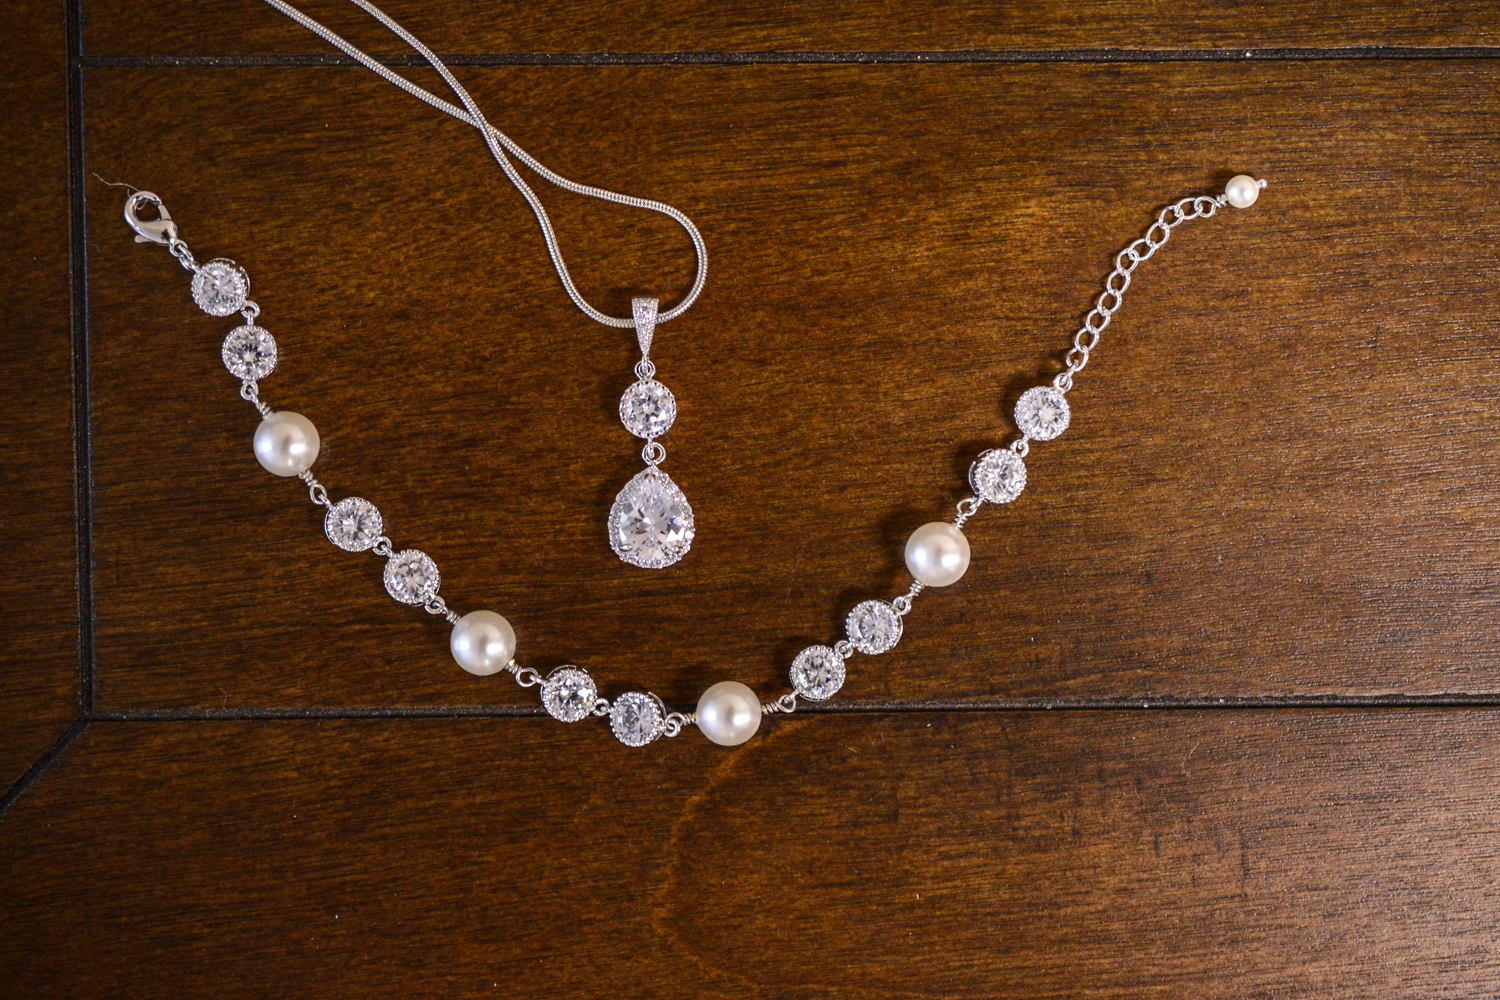 Bride's diamond jewelry on a wooden background | Maria Grace Photography